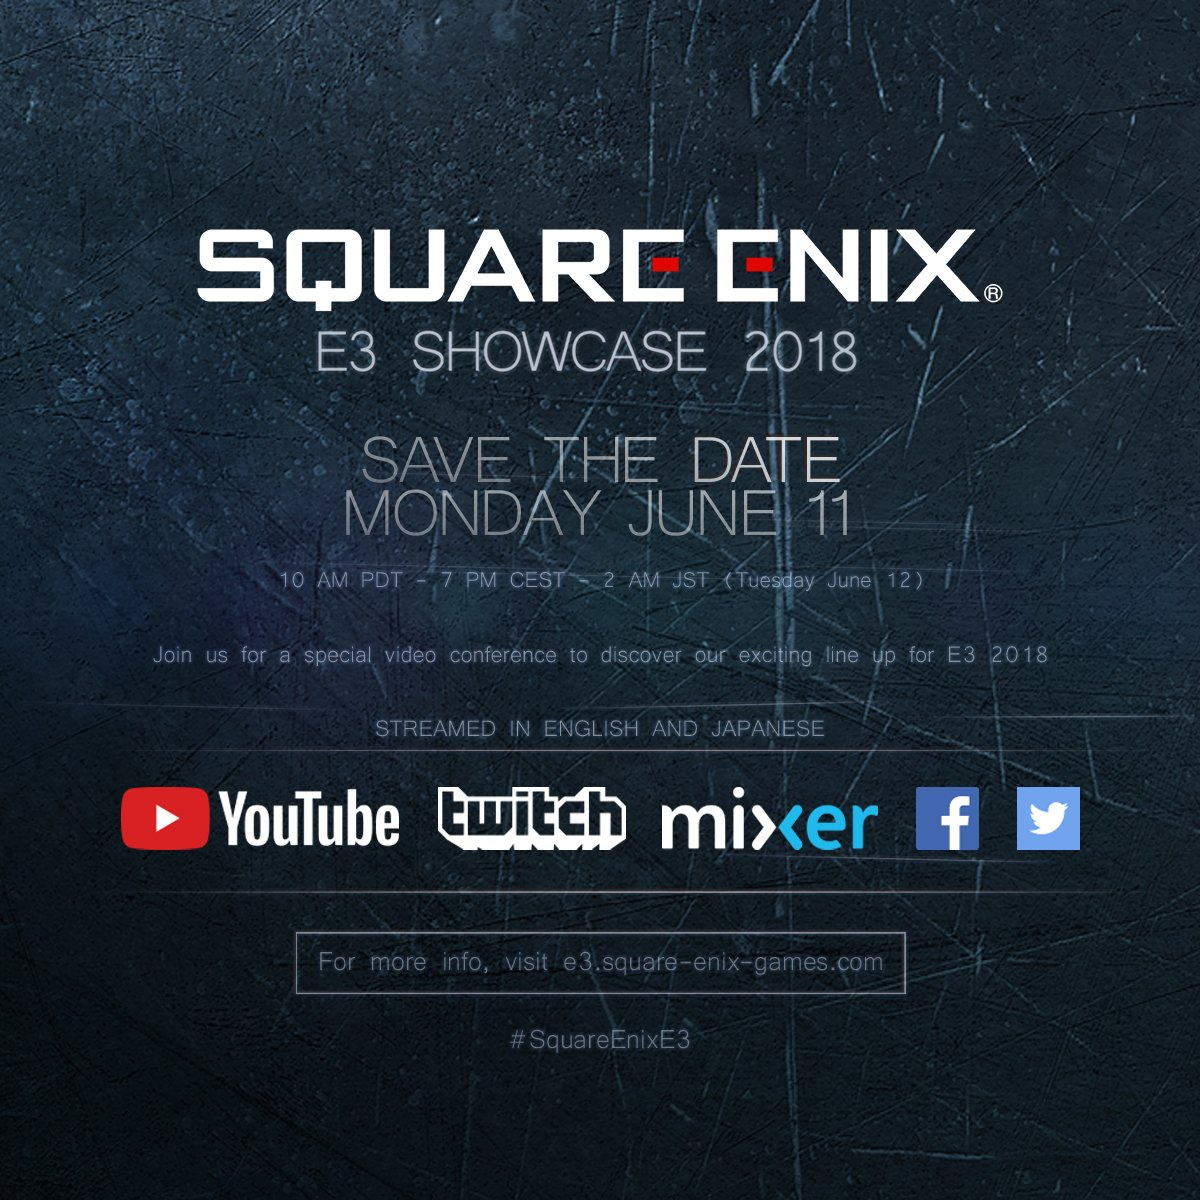 Square Enix E3 Showcase 2018